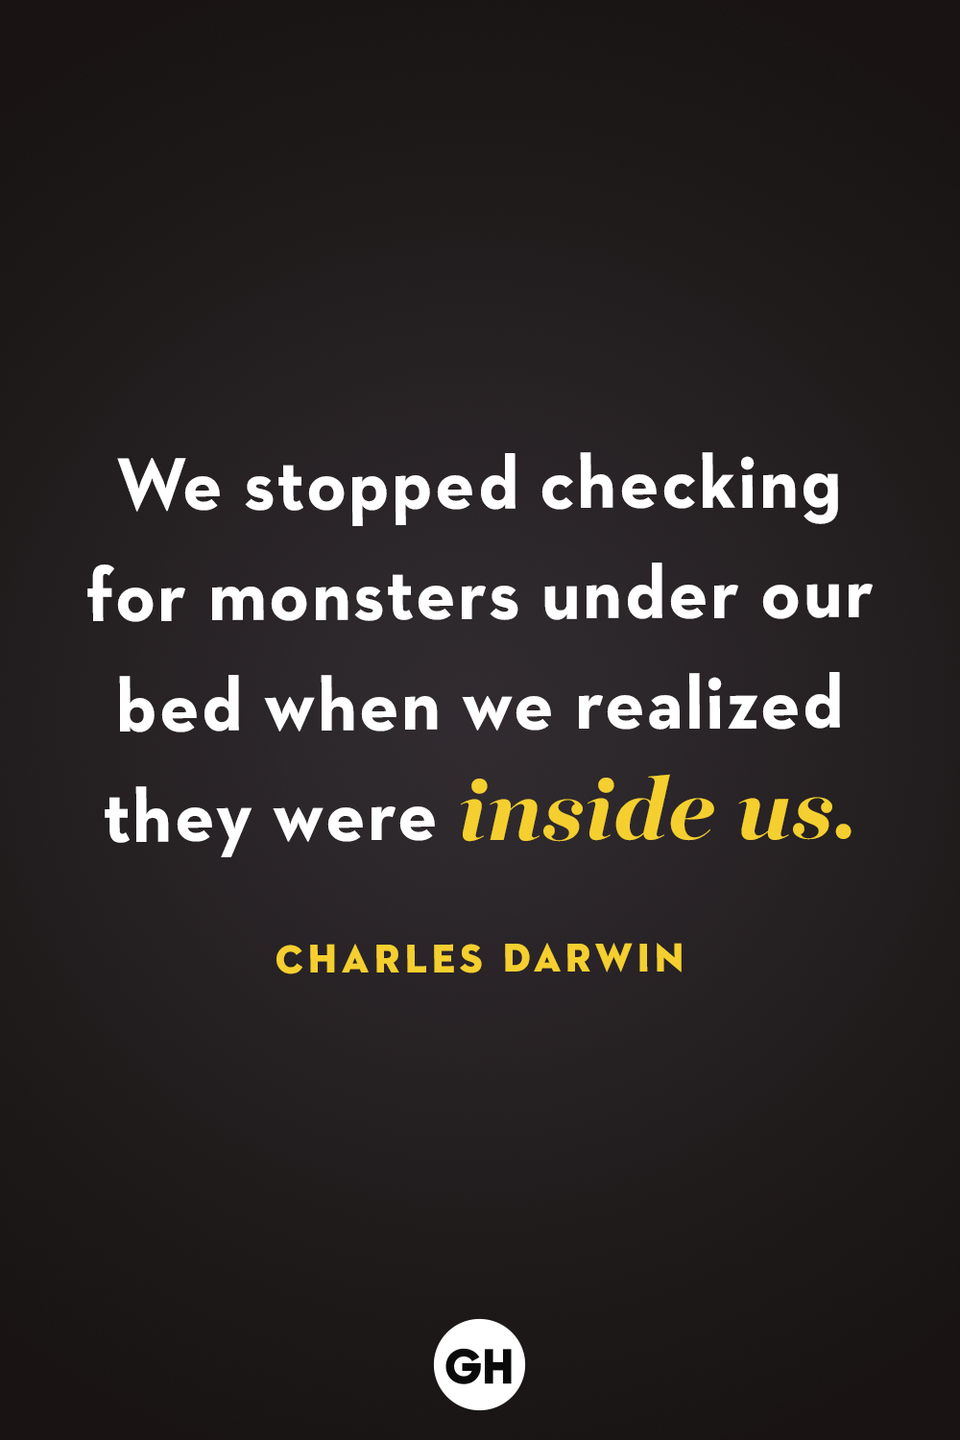 <p>We stopped checking for monsters under our bed when we realized they were inside us. </p>